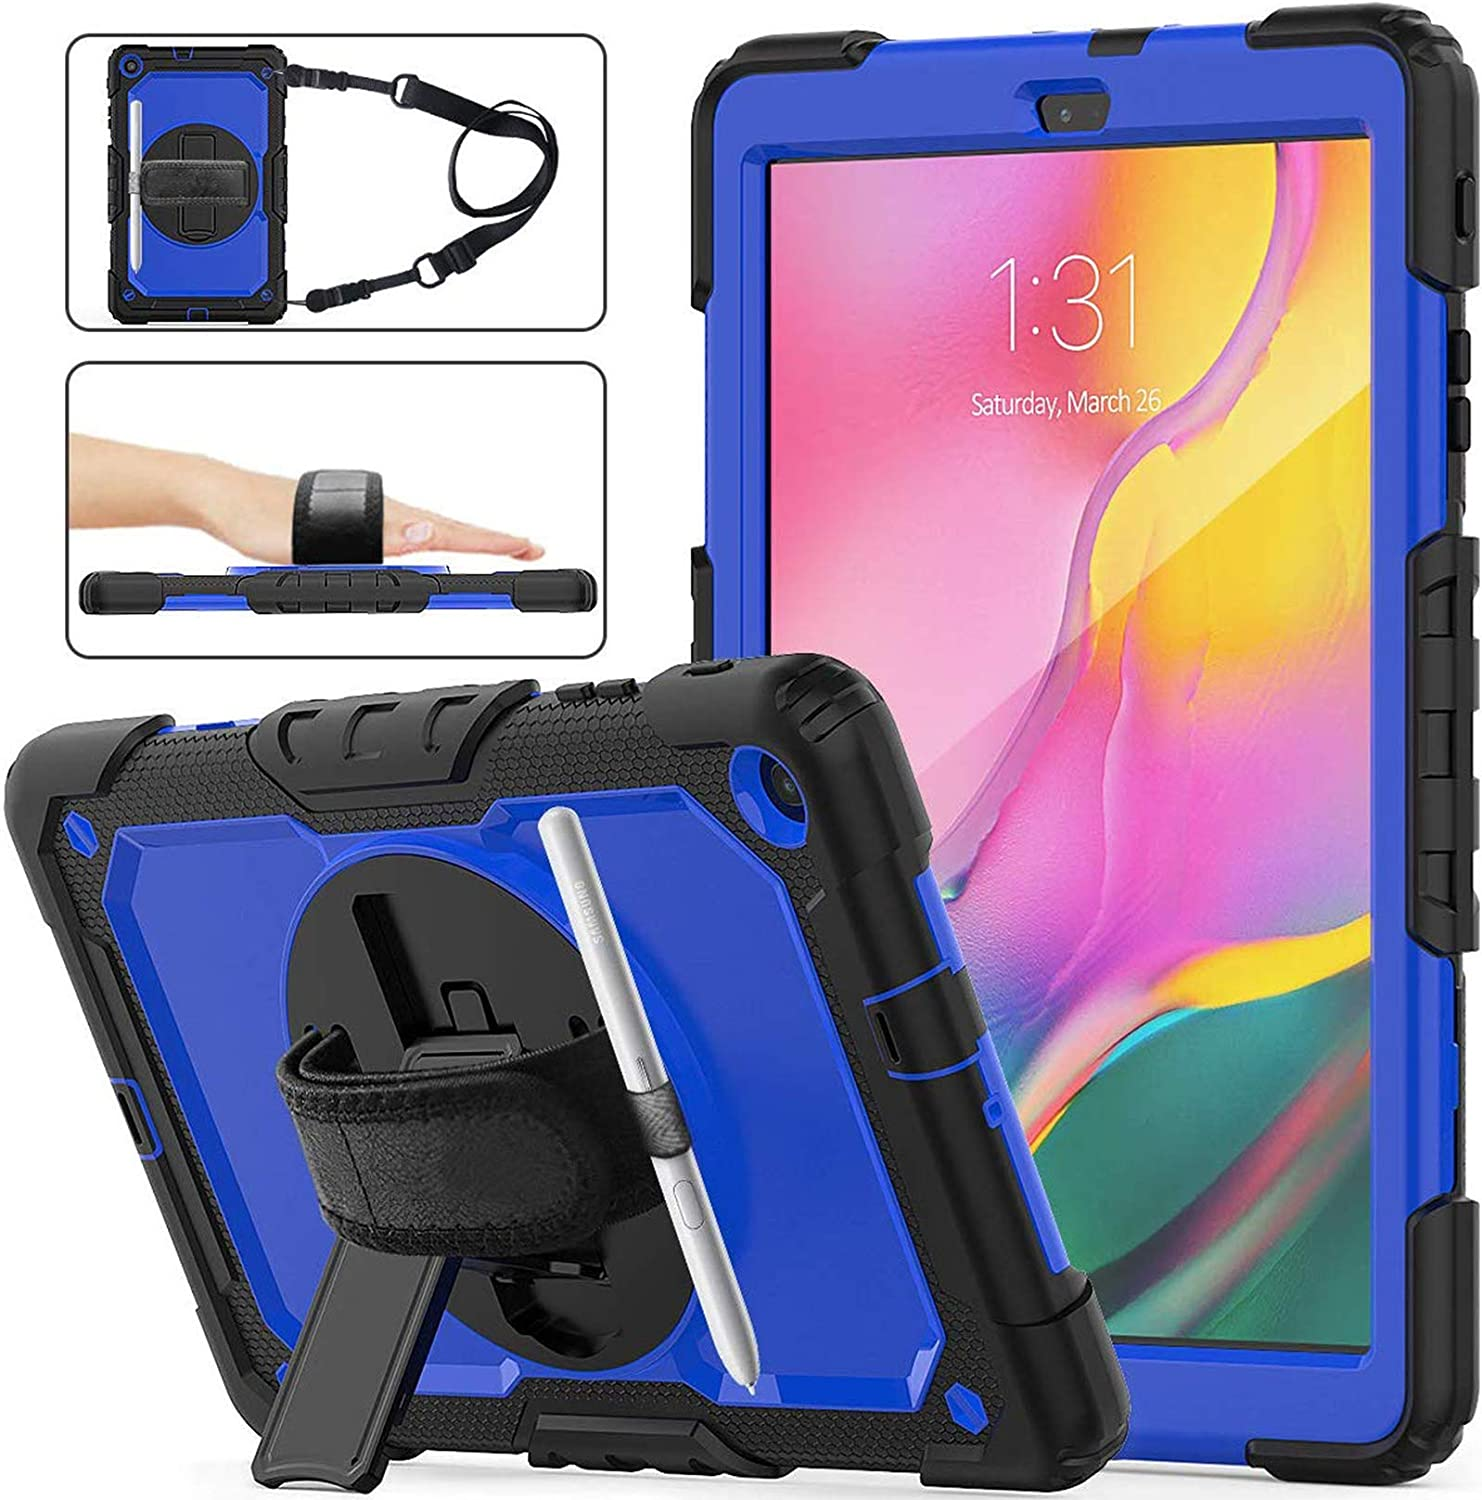 Case for Samsung Tab A 10.1 2019,Built-in Screen Protector, Herize Heavy Duty Rugged Shockproof Drop Protection Case with 360 Kickstand/Handle Hand Strap/Shoulder Strap for Galaxy Tab A 10.1 Inch 2019